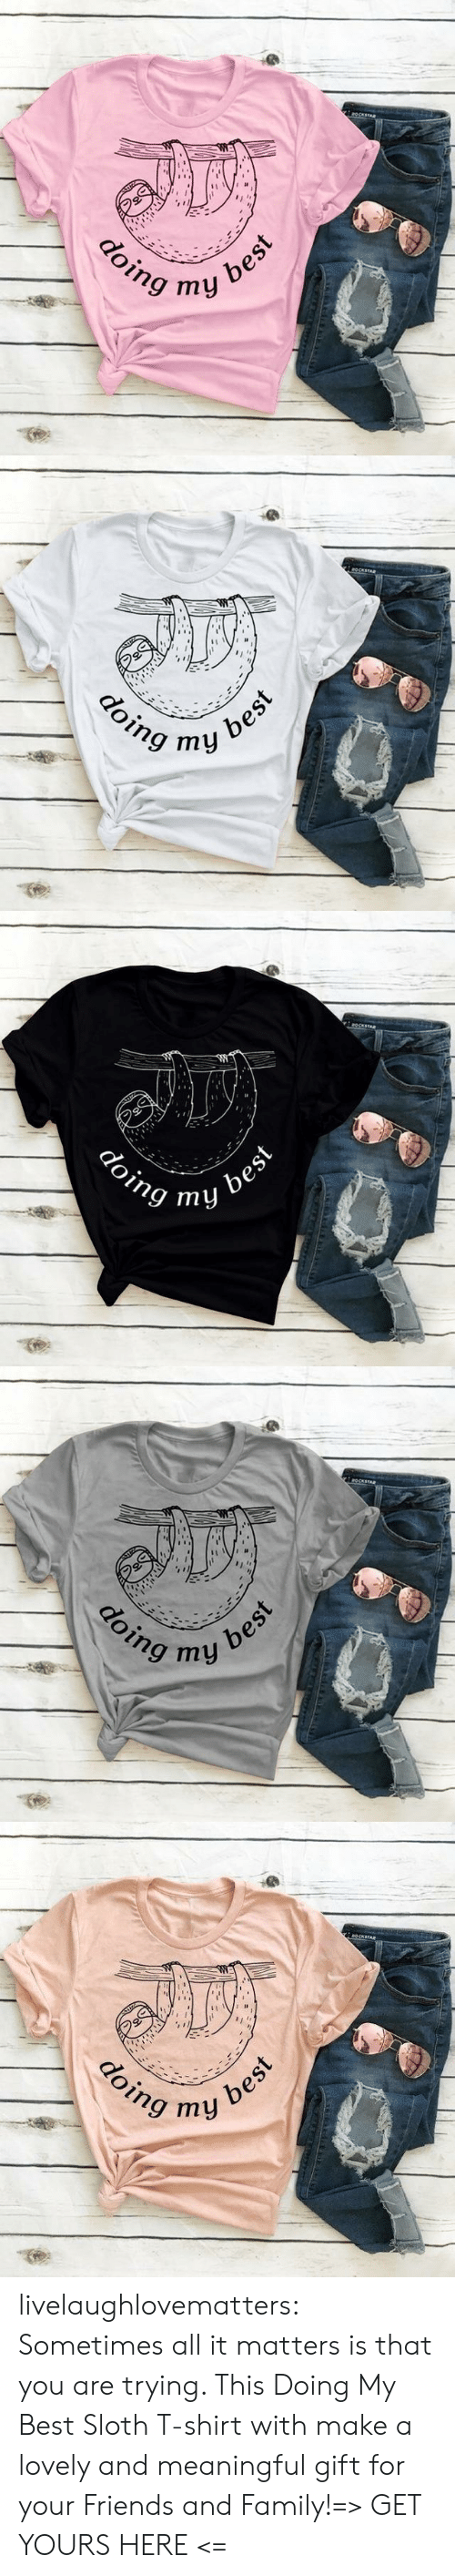 Sloth: అ  best  ту  doing   OCKs  doing my  best   eOCKs  doing  best  ту   అ  नोपी  doing  best  my  क   aoCKSTAR  doing  ny best livelaughlovematters:  Sometimes all it matters is that you are trying. This Doing My Best Sloth T-shirt with make a lovely and meaningful gift for your Friends and Family!=> GET YOURS HERE <=